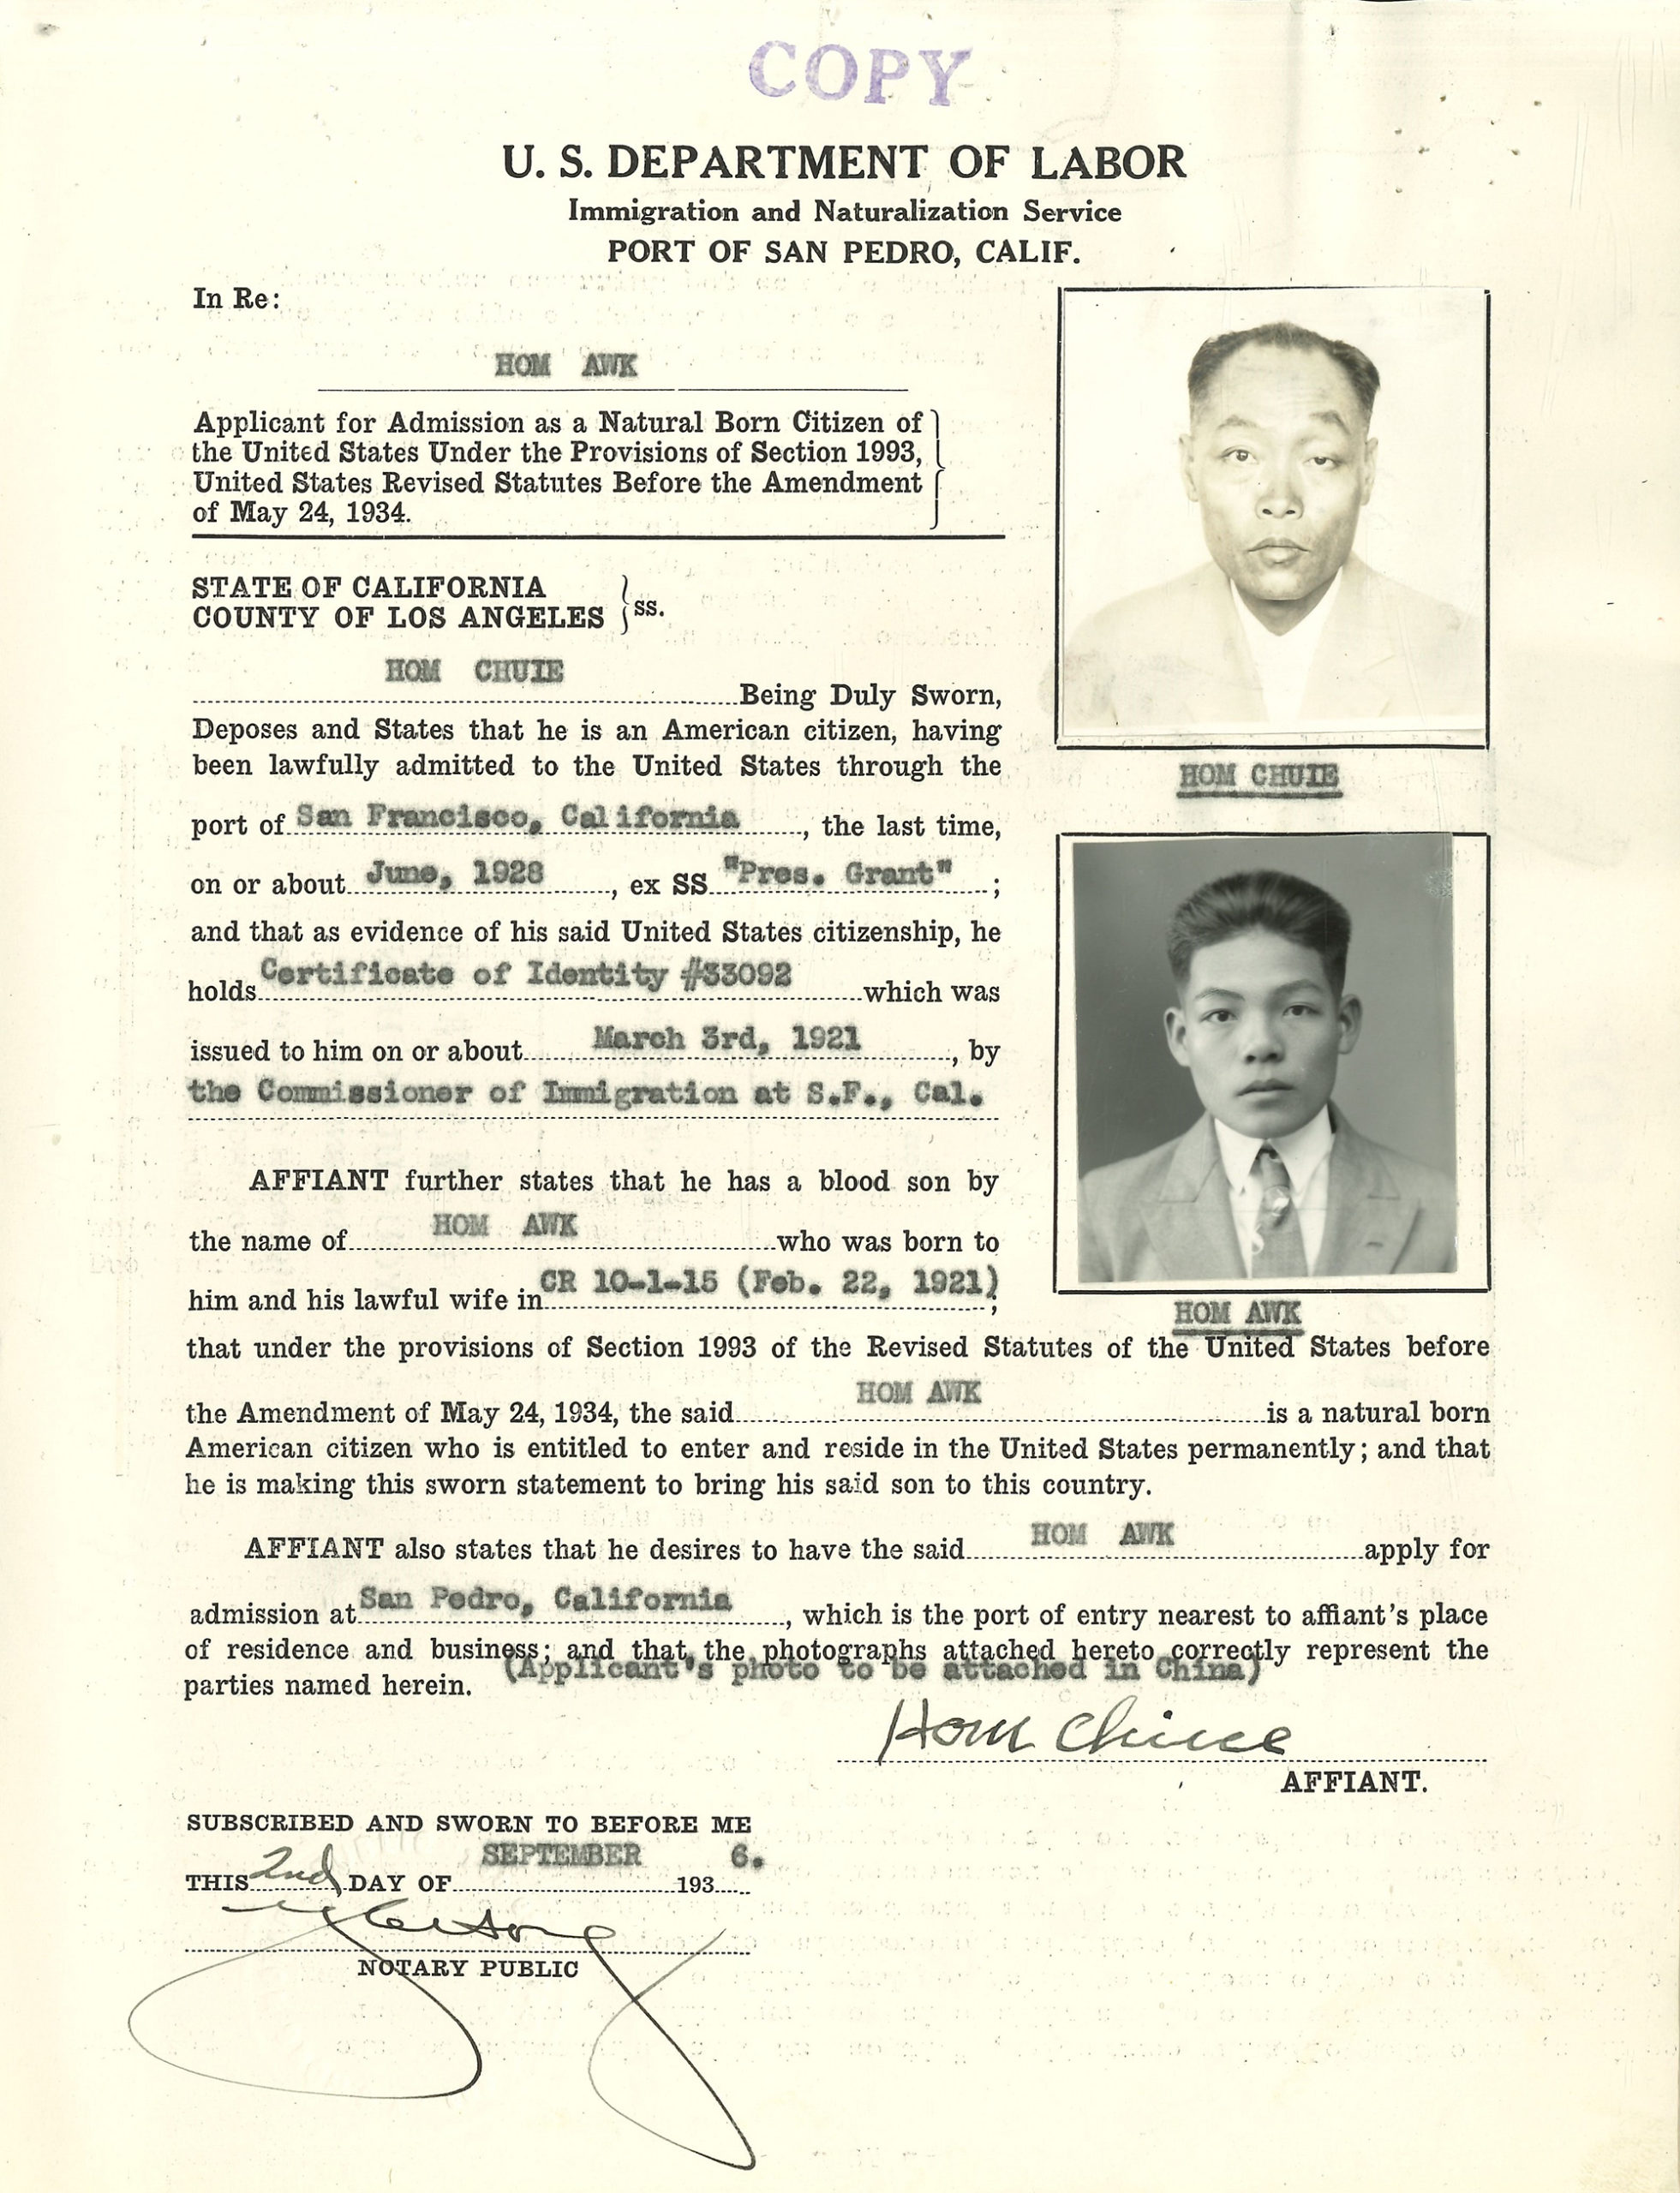 Hom Chuie and Hom Awk's immigration affidavit prepared by attorney Y. C. Hong (1936)